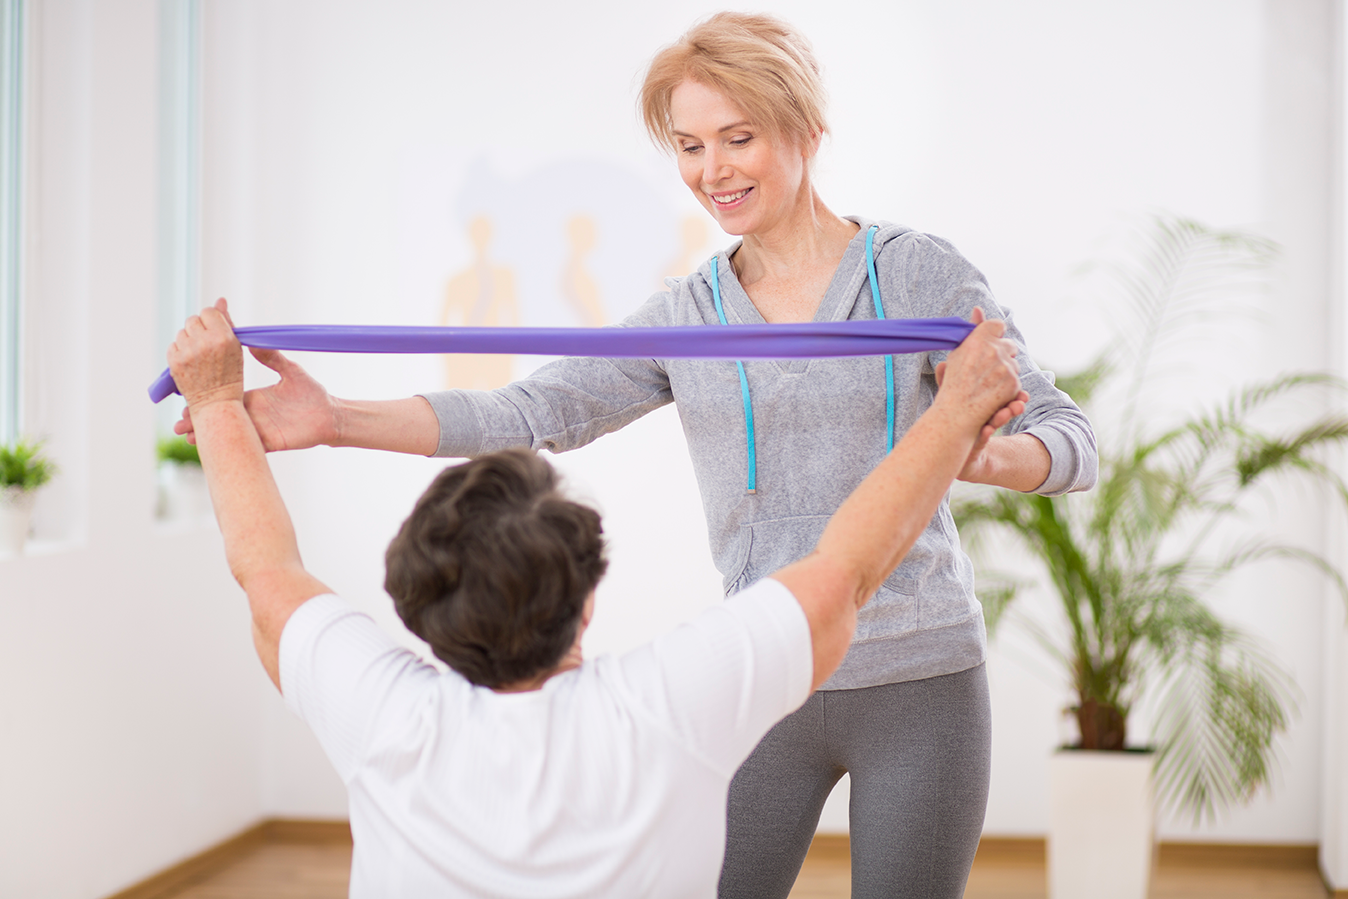 trainer-resistance-band-senior-woman-client